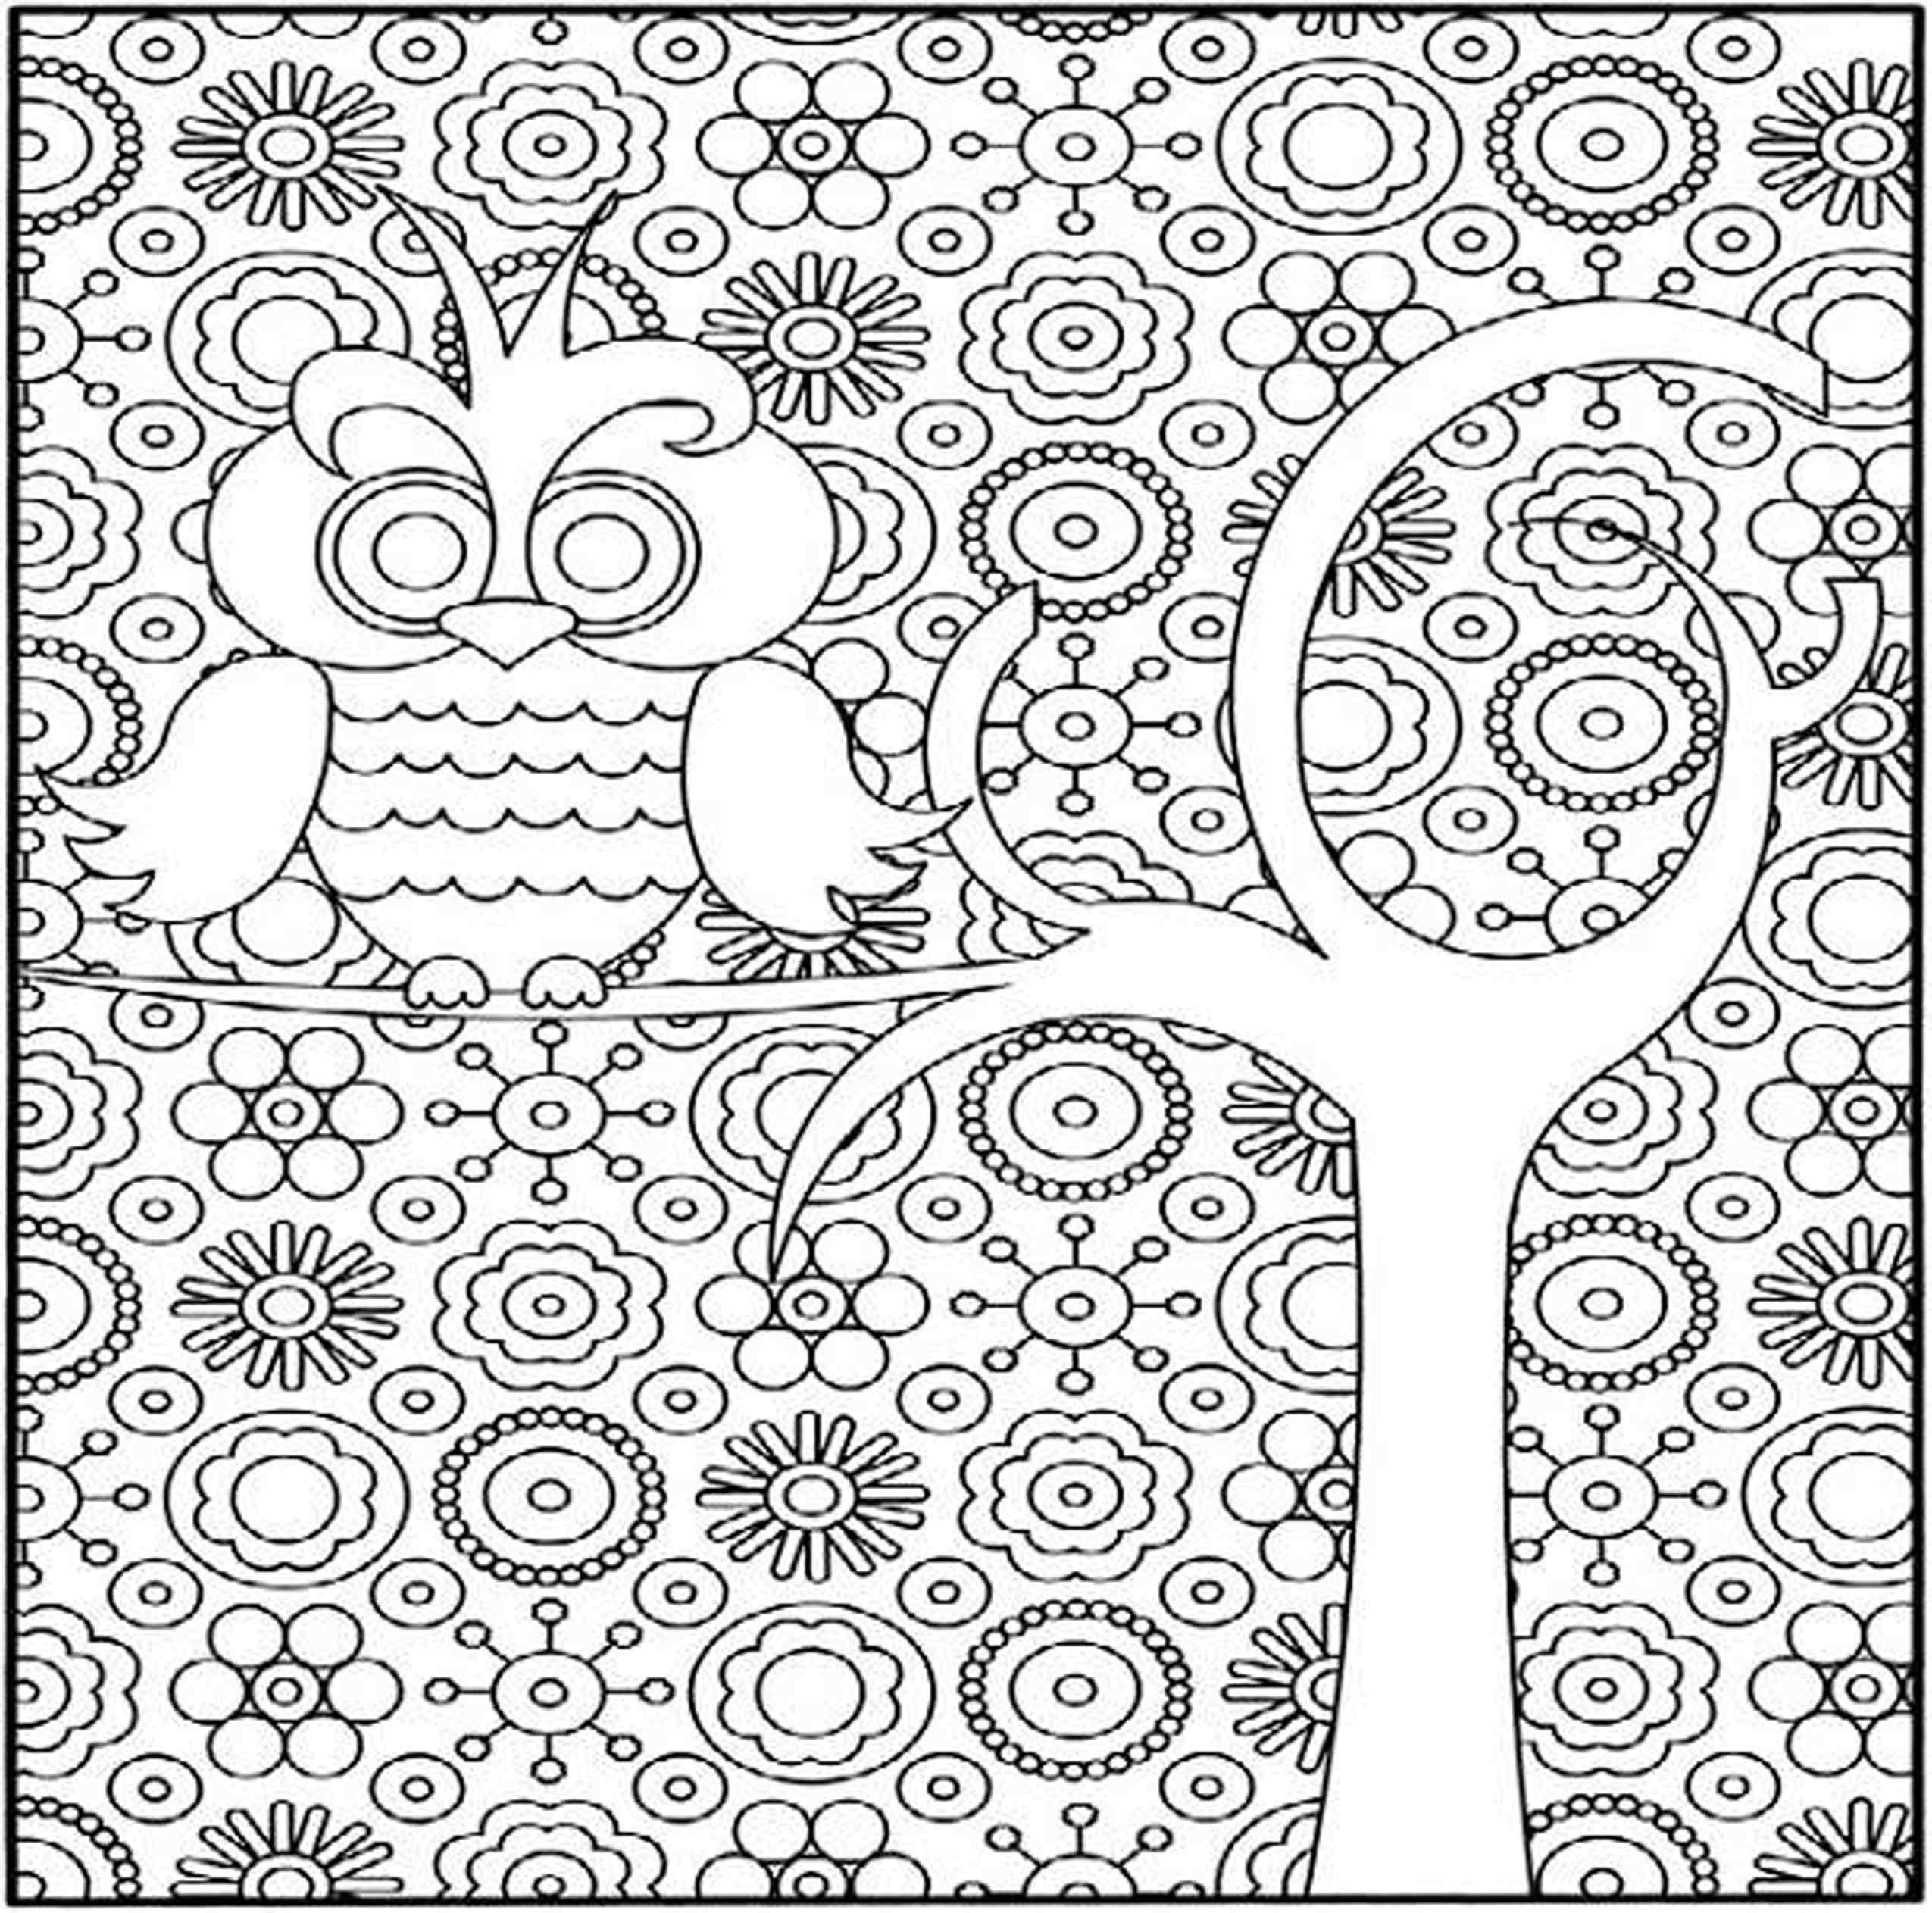 Spring coloring pages for adults free - Free Coloring Pages Of Difficult Patterns